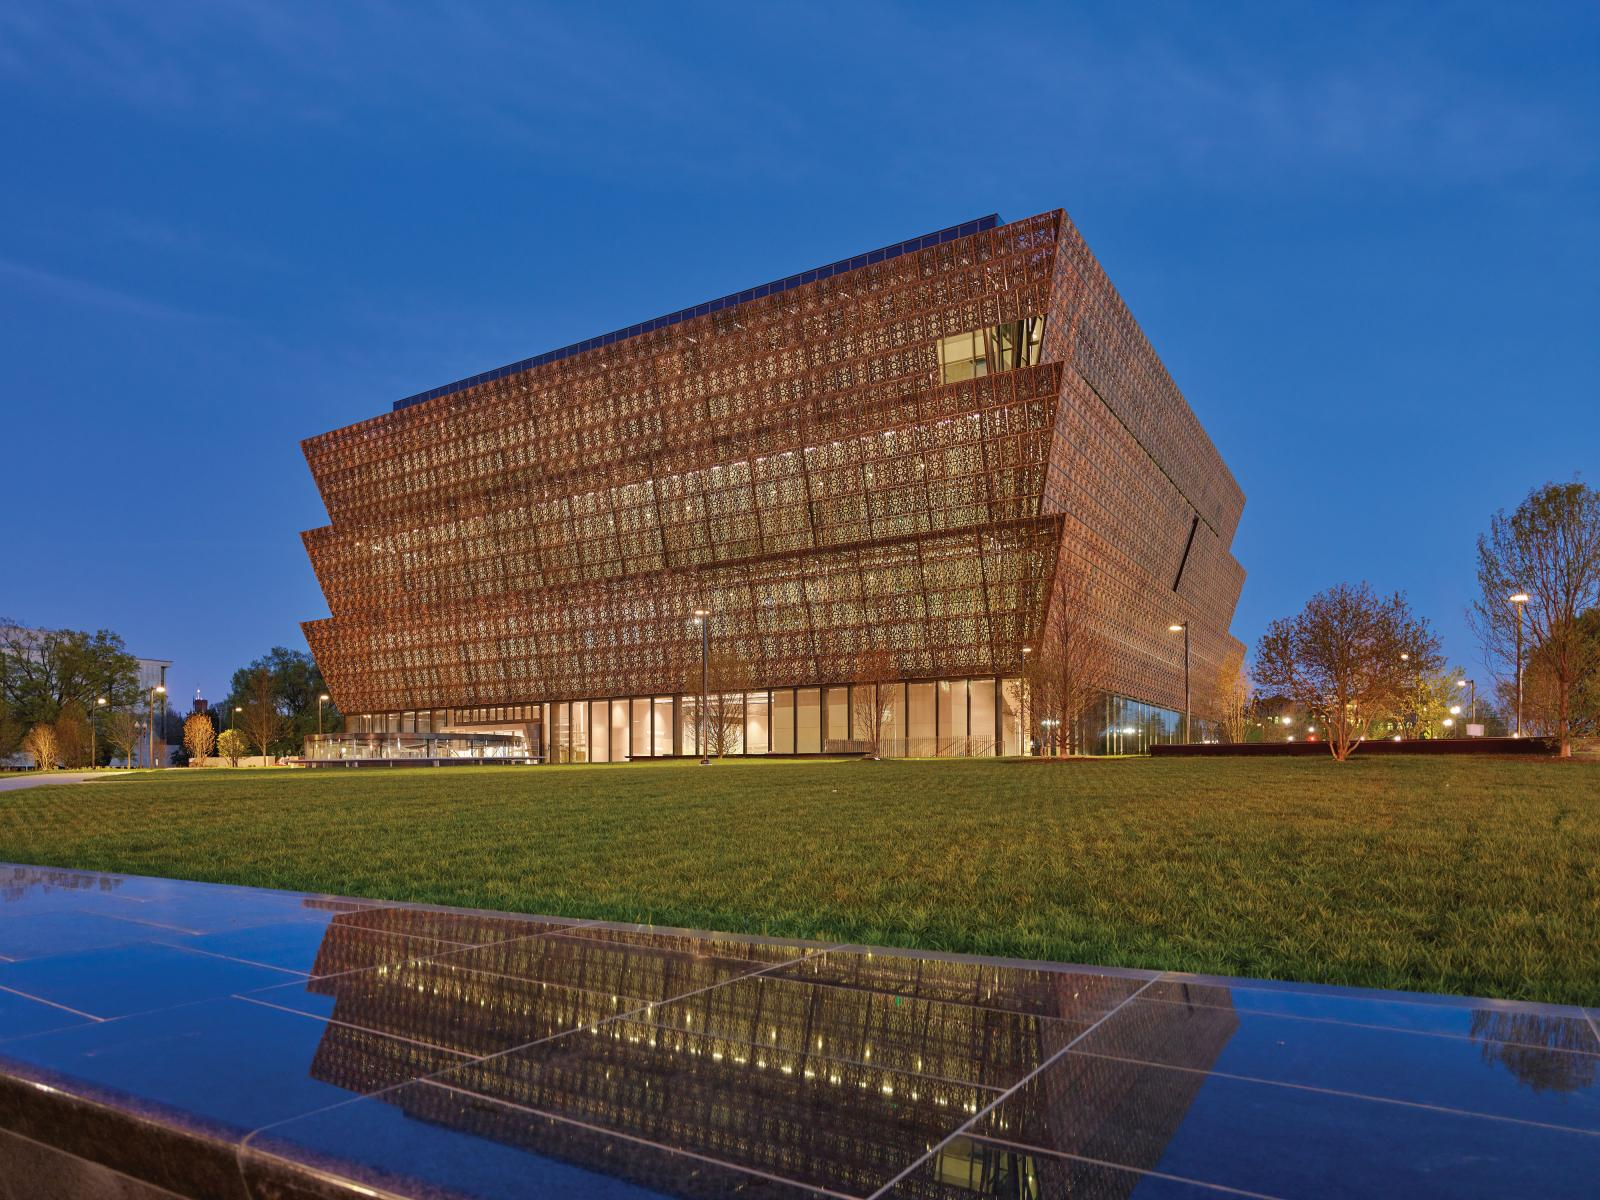 Exterior of National Museum of African American History and Culture building. Photo by Alan Karchmer